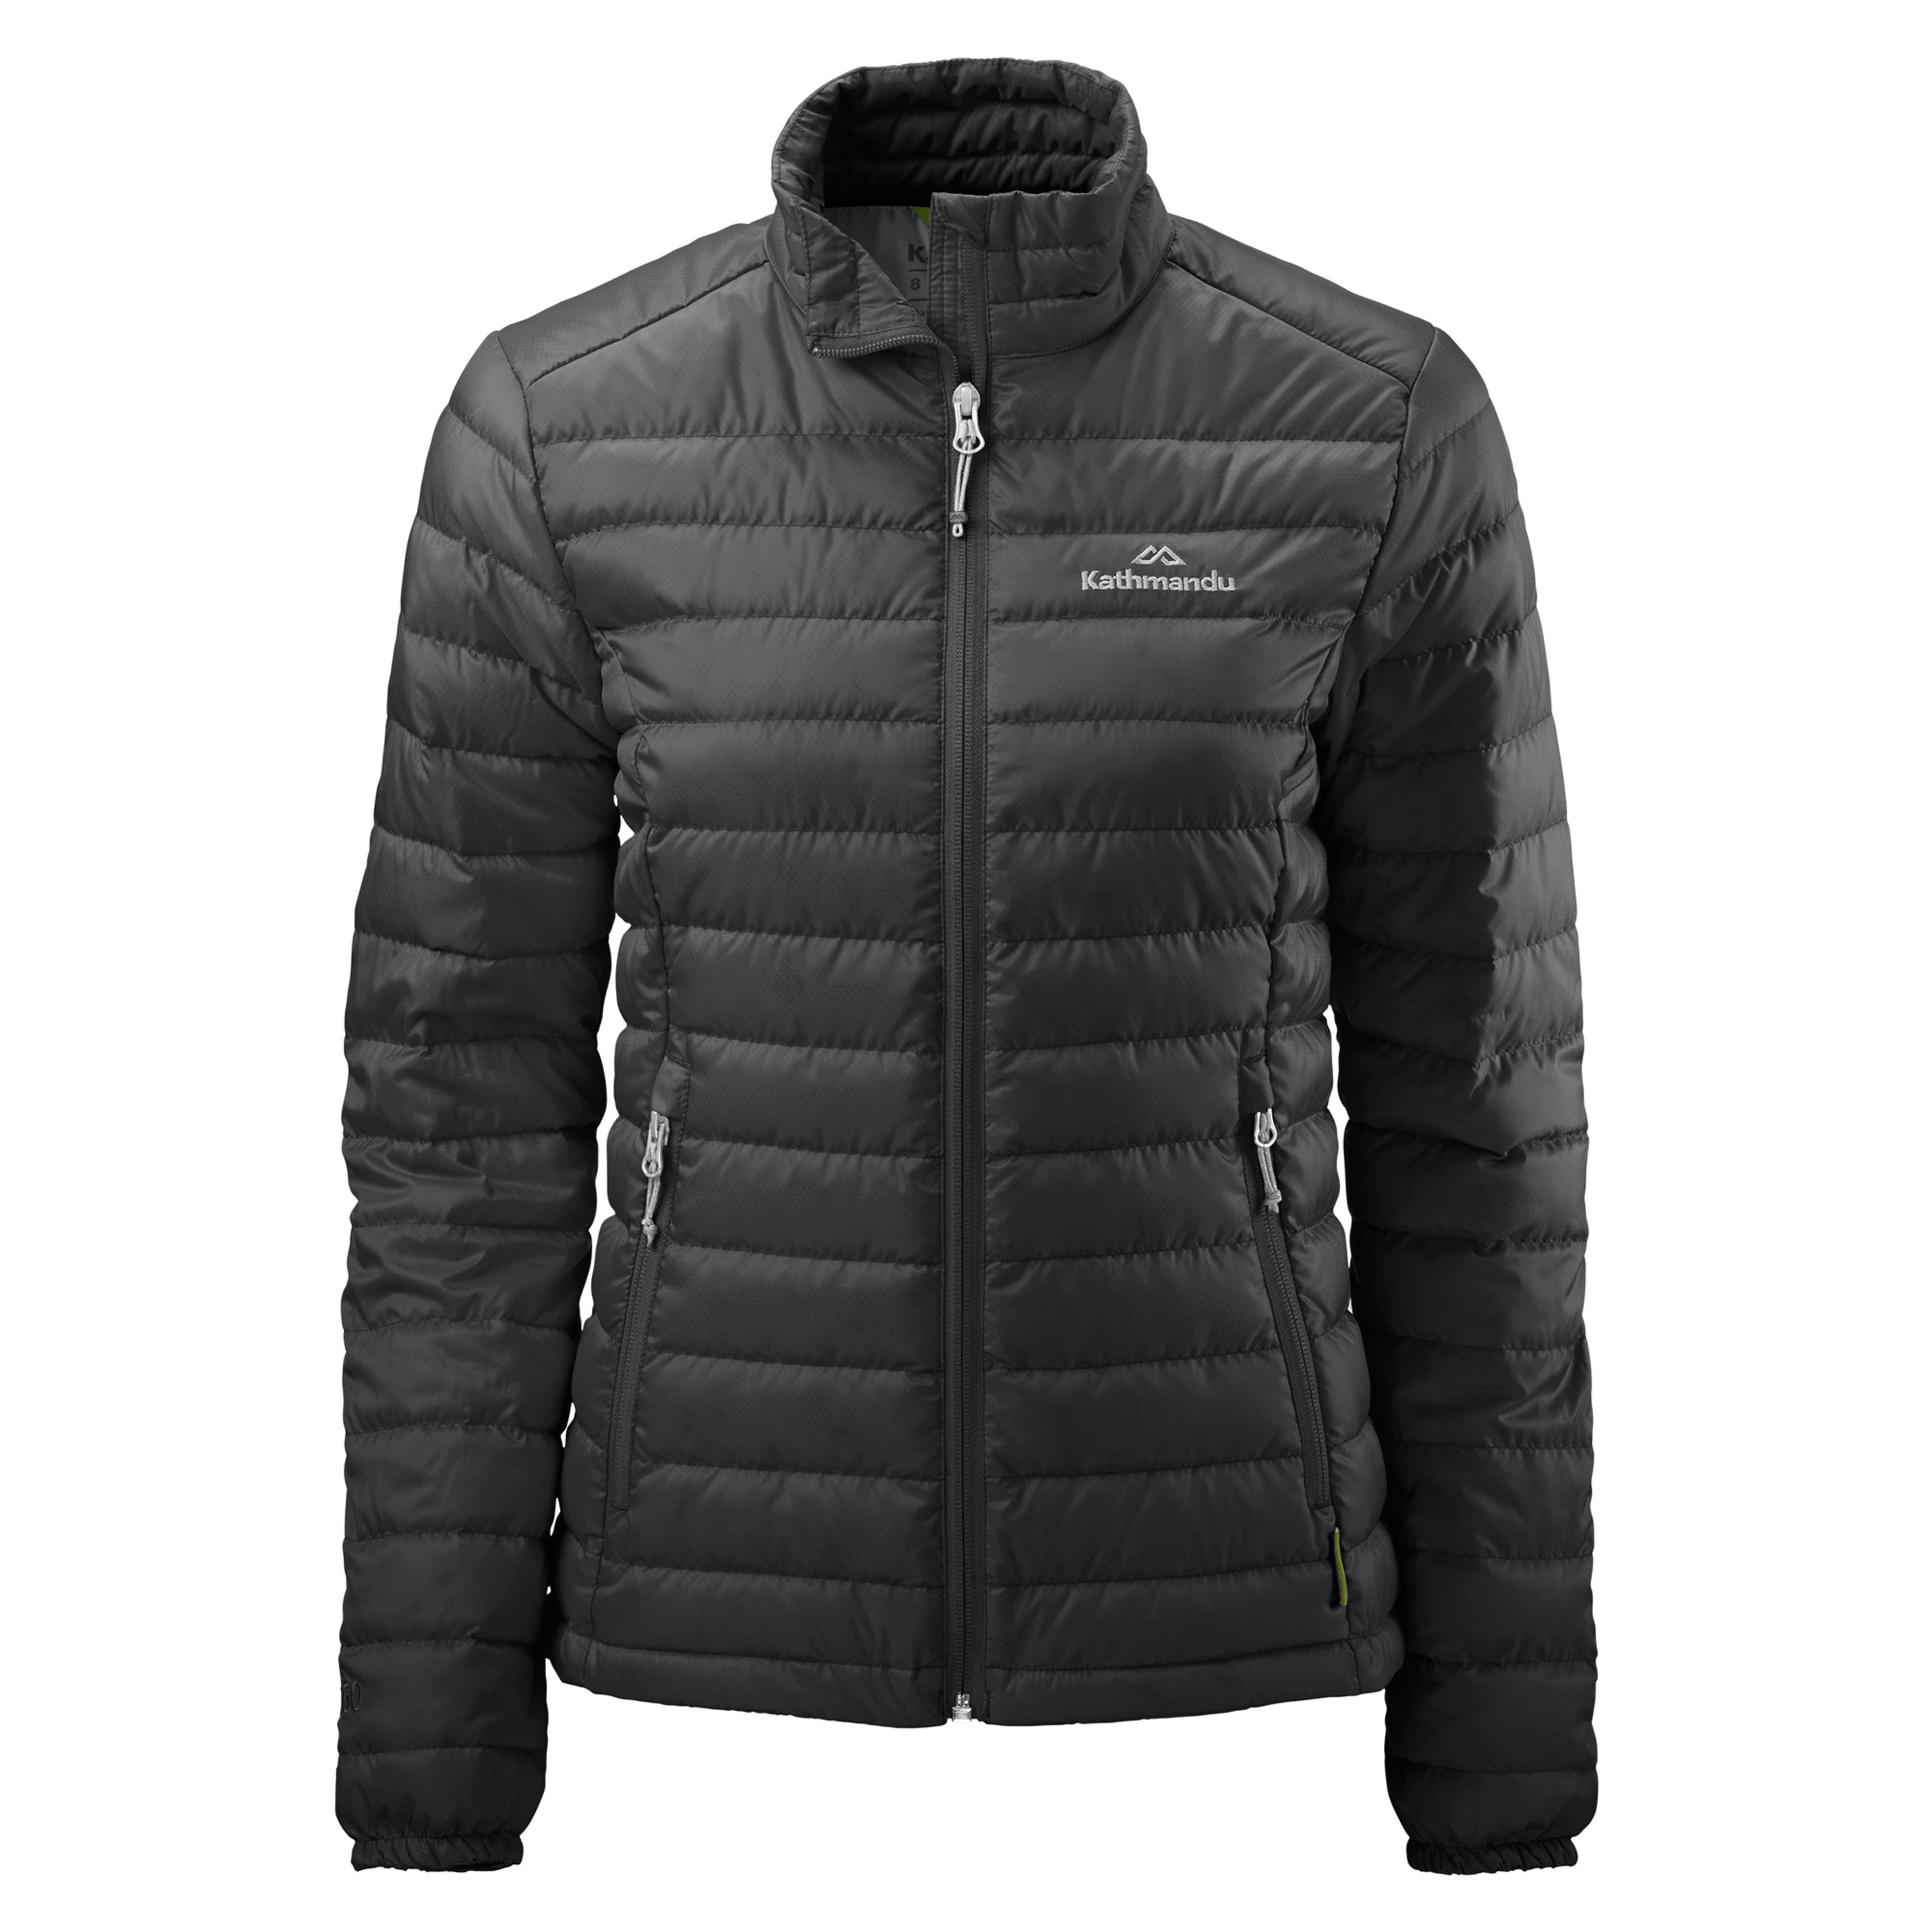 648499b5b Womens Jackets & Coats | Winter Coats for Women | Kathmandu AU